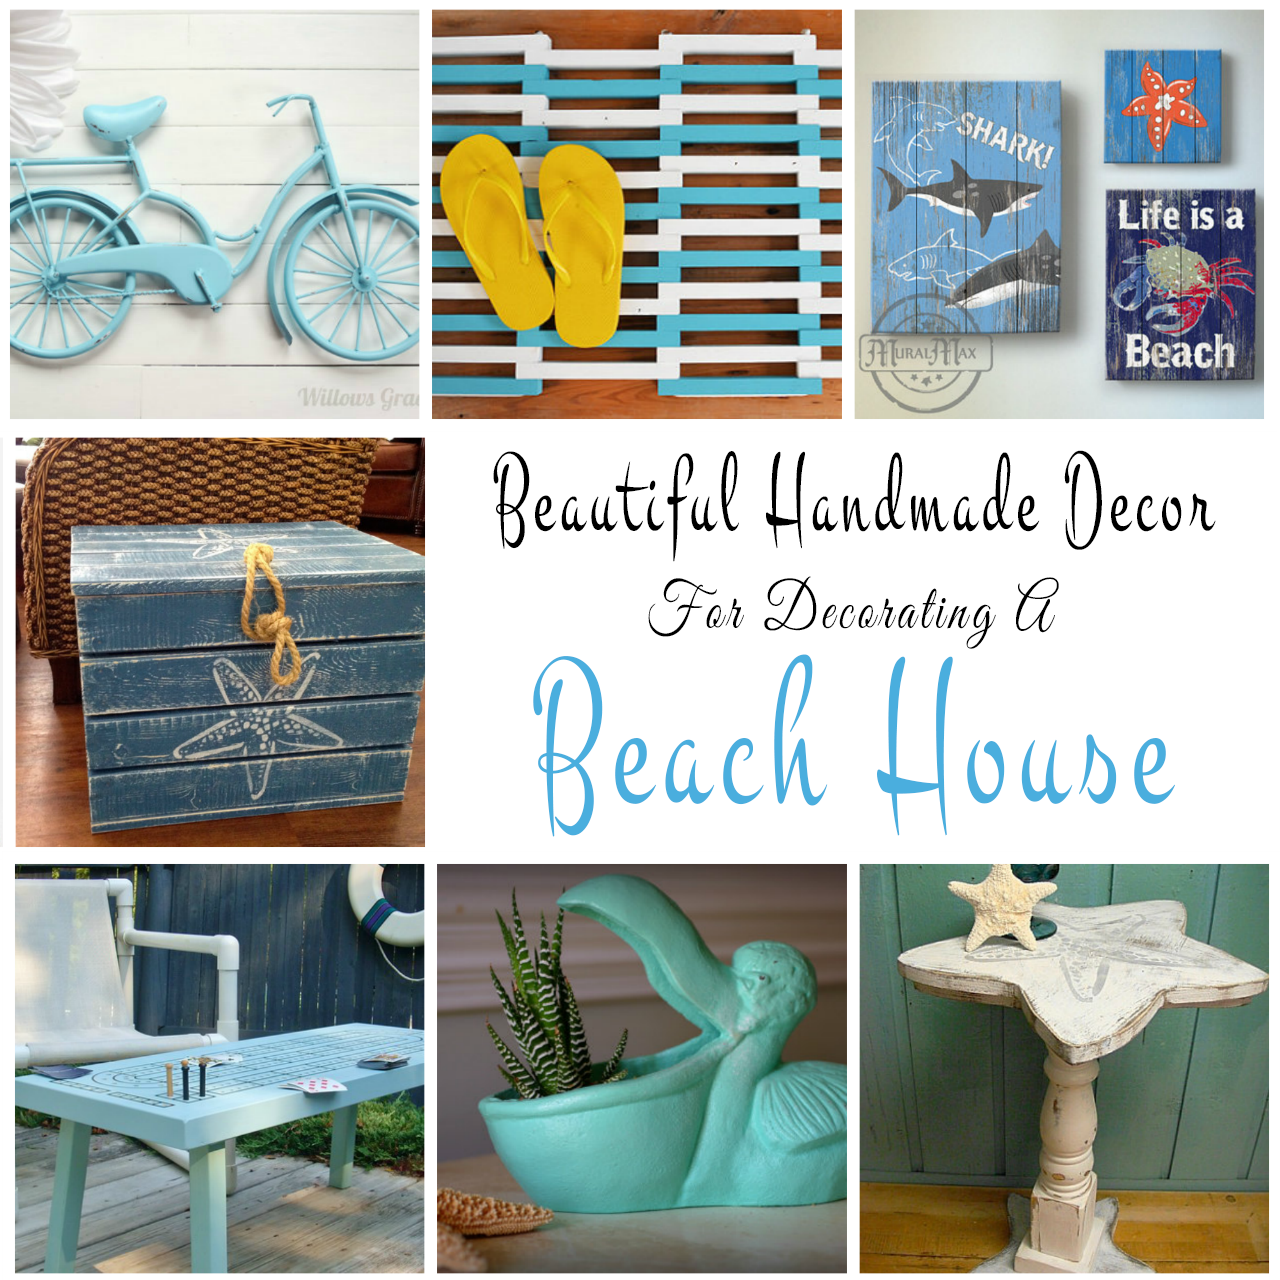 Handmade decor ideas for decorating a beach house for Beach house decorating ideas photos